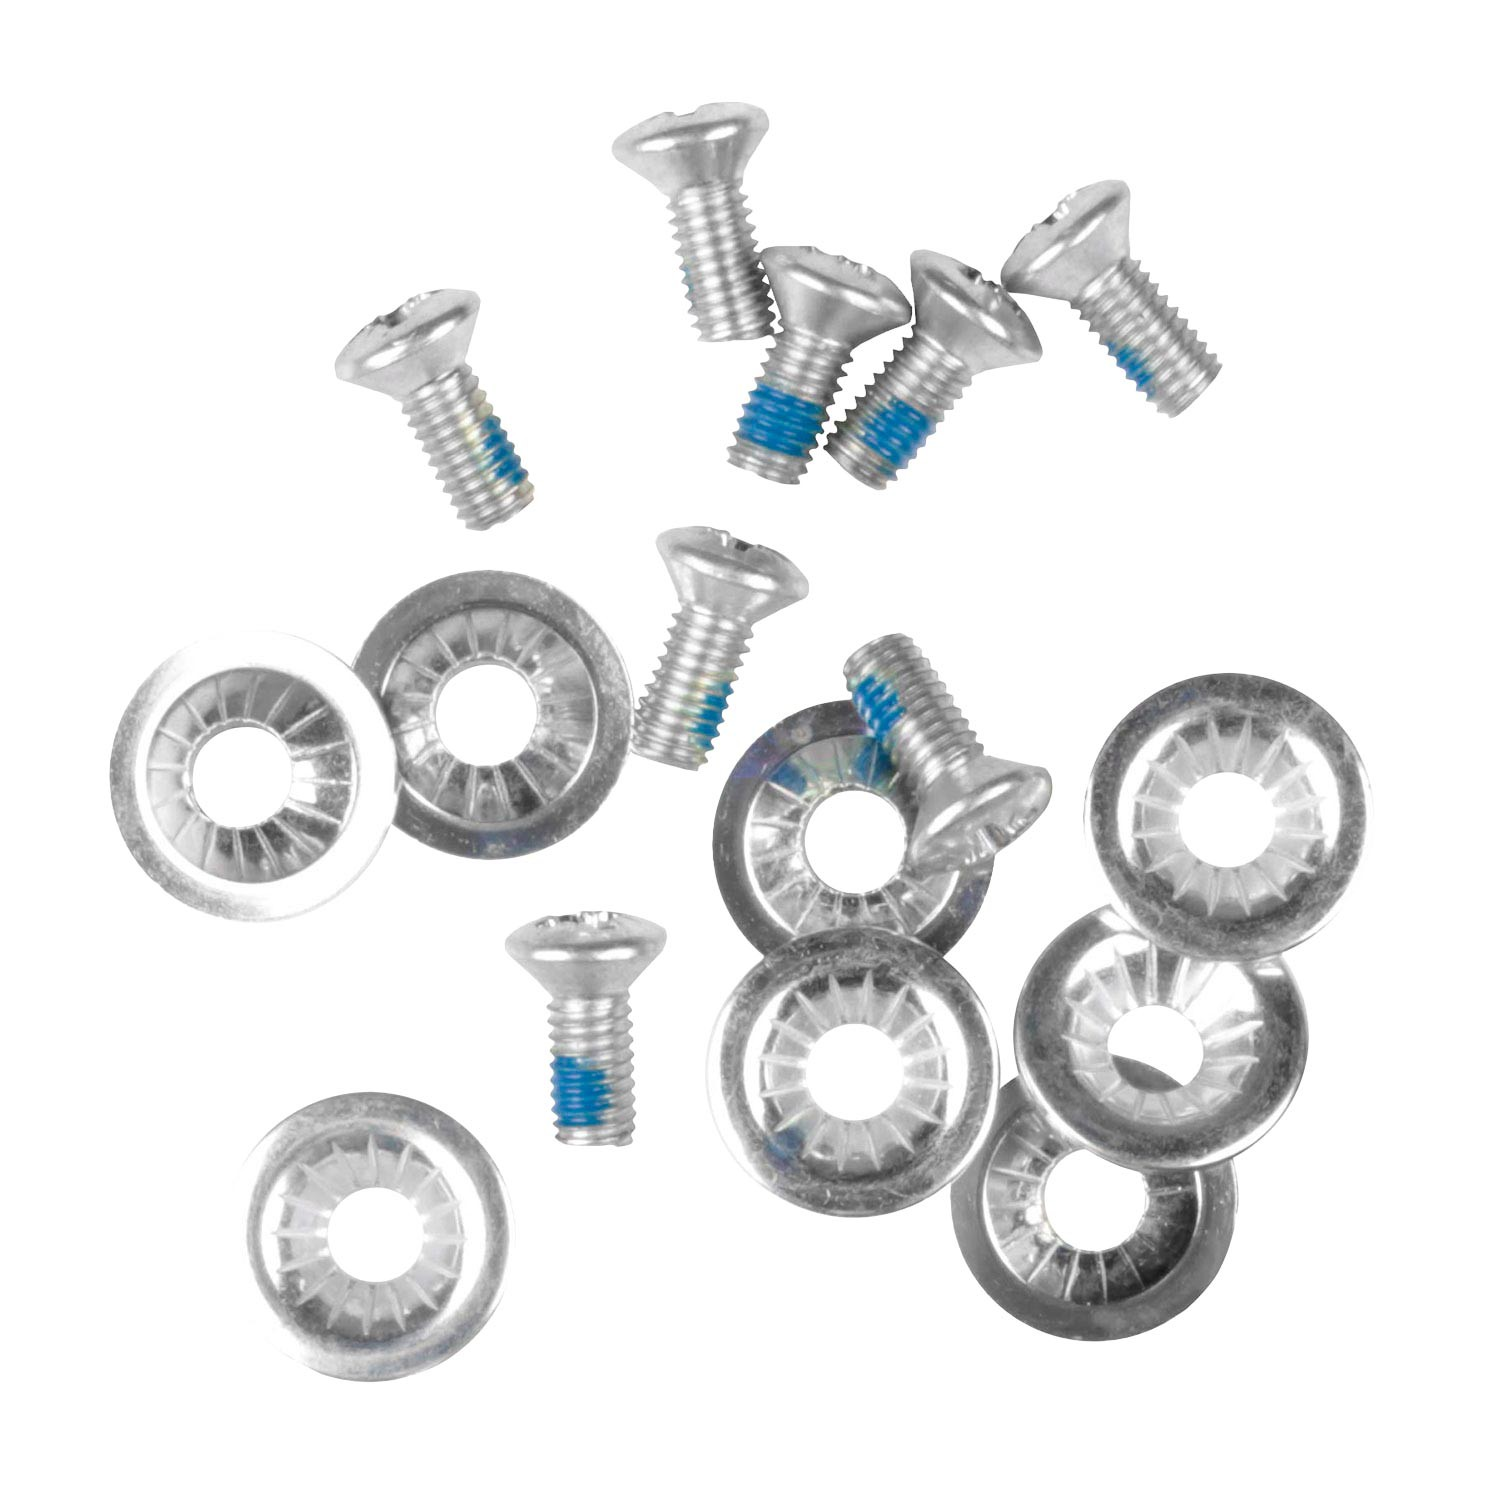 Šrouby Gravity Screws And Washers silver